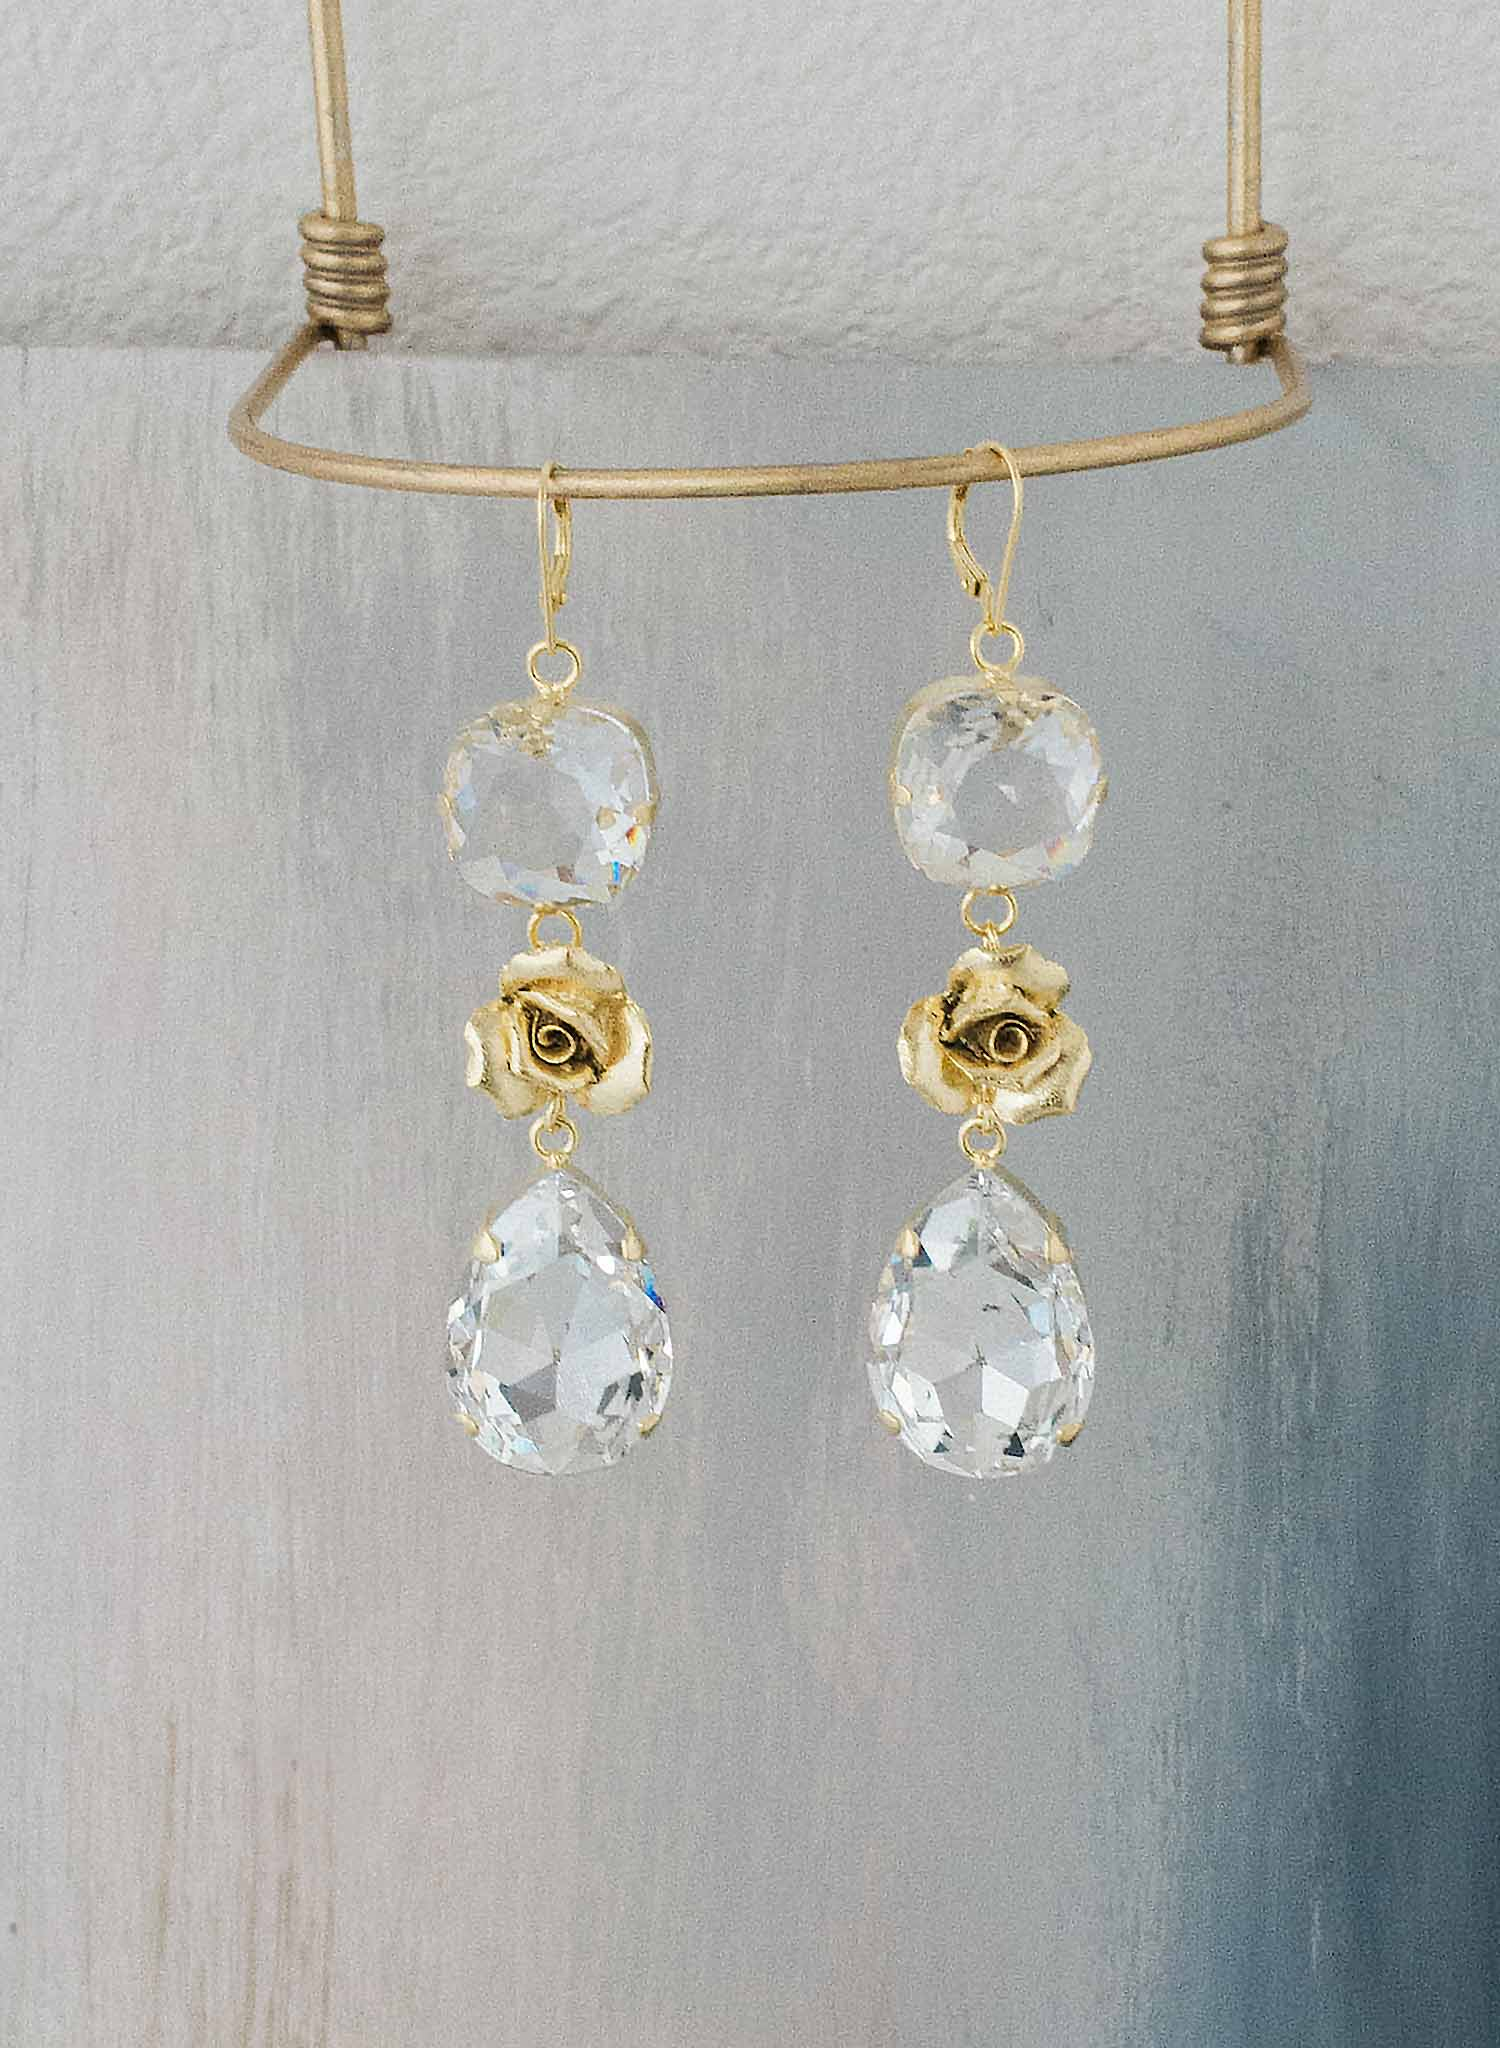 Princess rose chandelier earrings - Style #9034